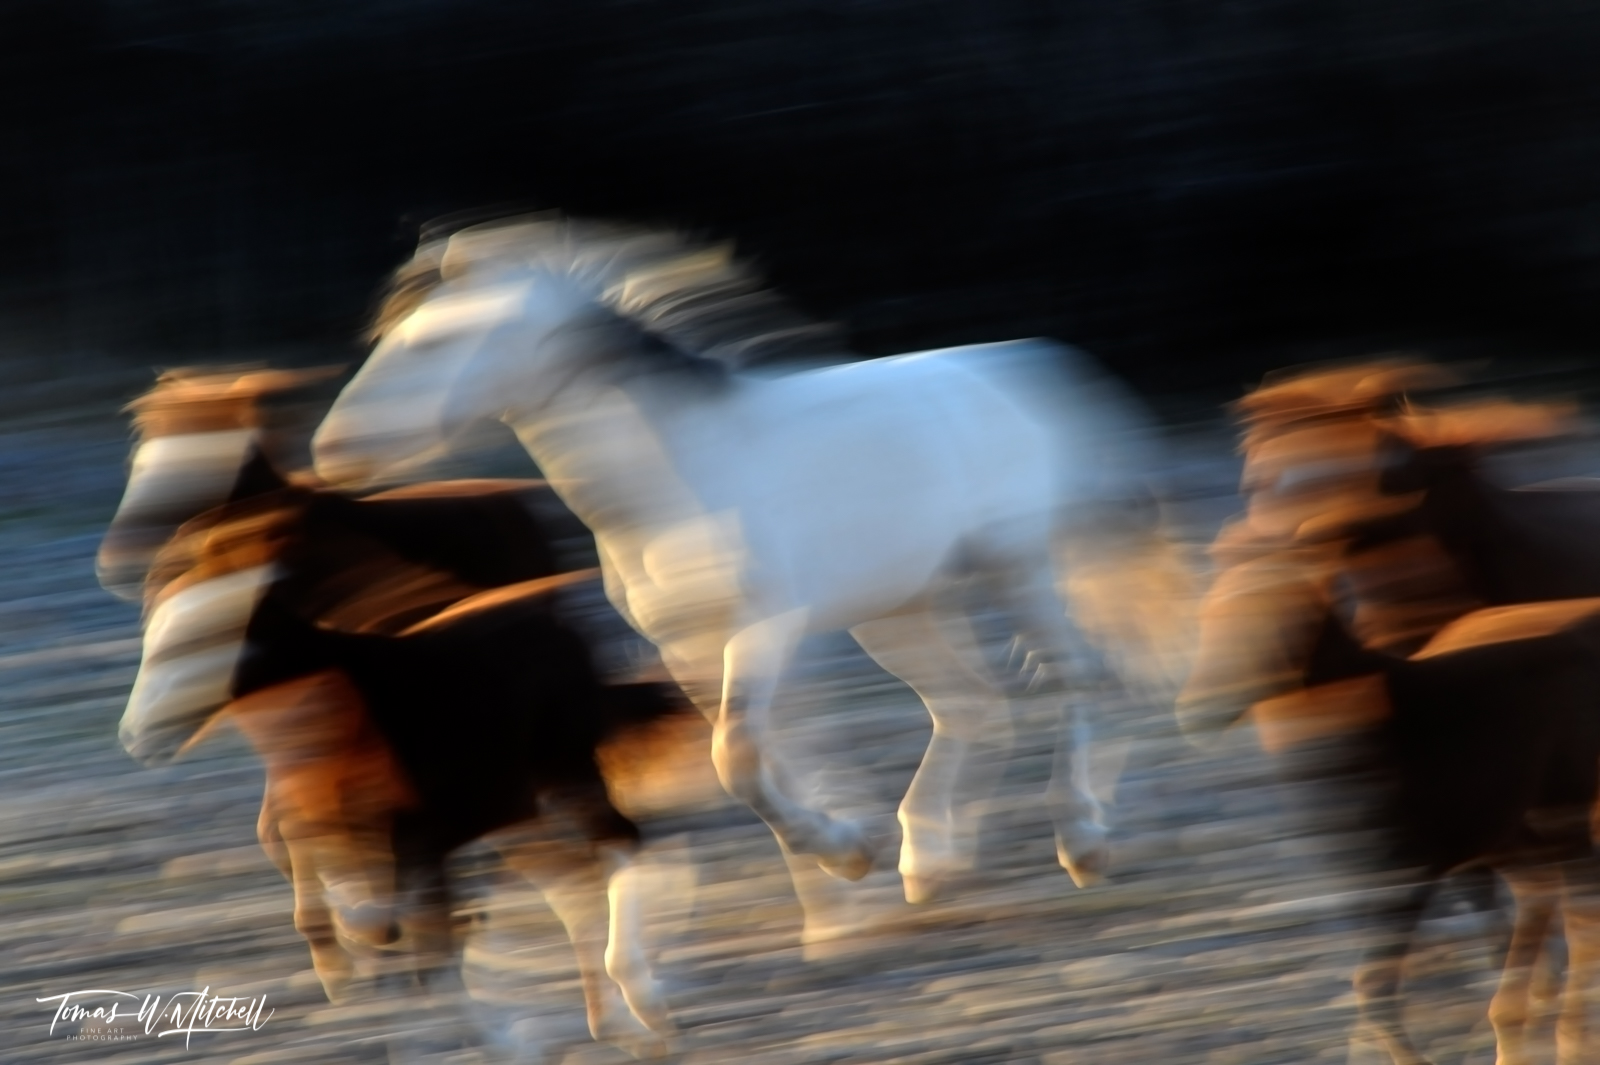 limited edition, fine art, prints, photograph, salt river, arizona, wild horses, mustangs, abstract, stallion, motion, running, photo